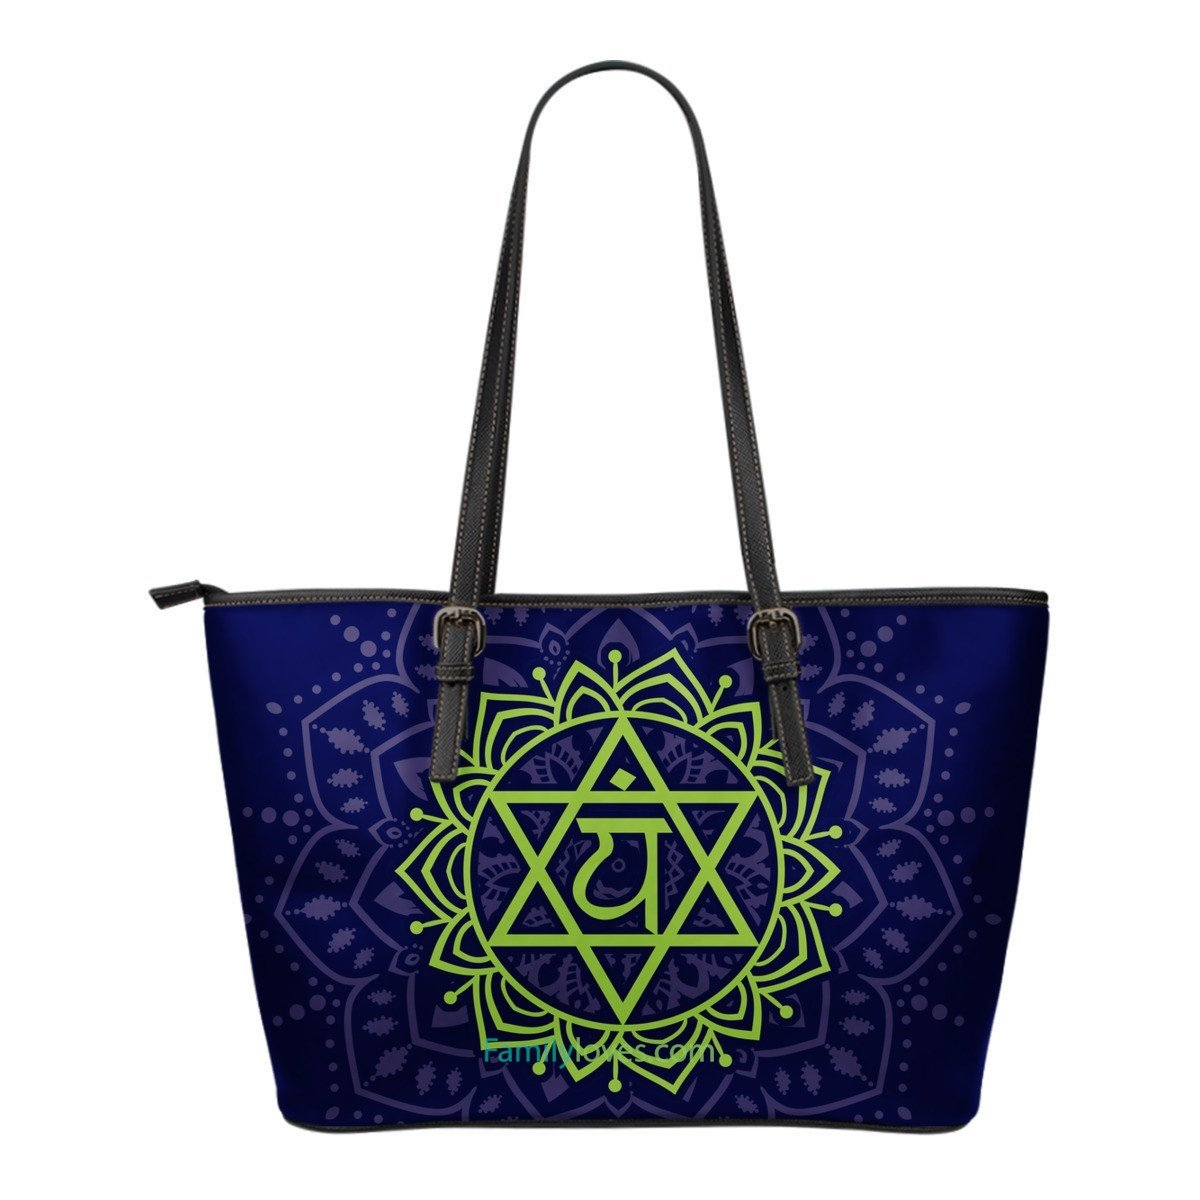 Where Can I Buy Yoga Bags 6